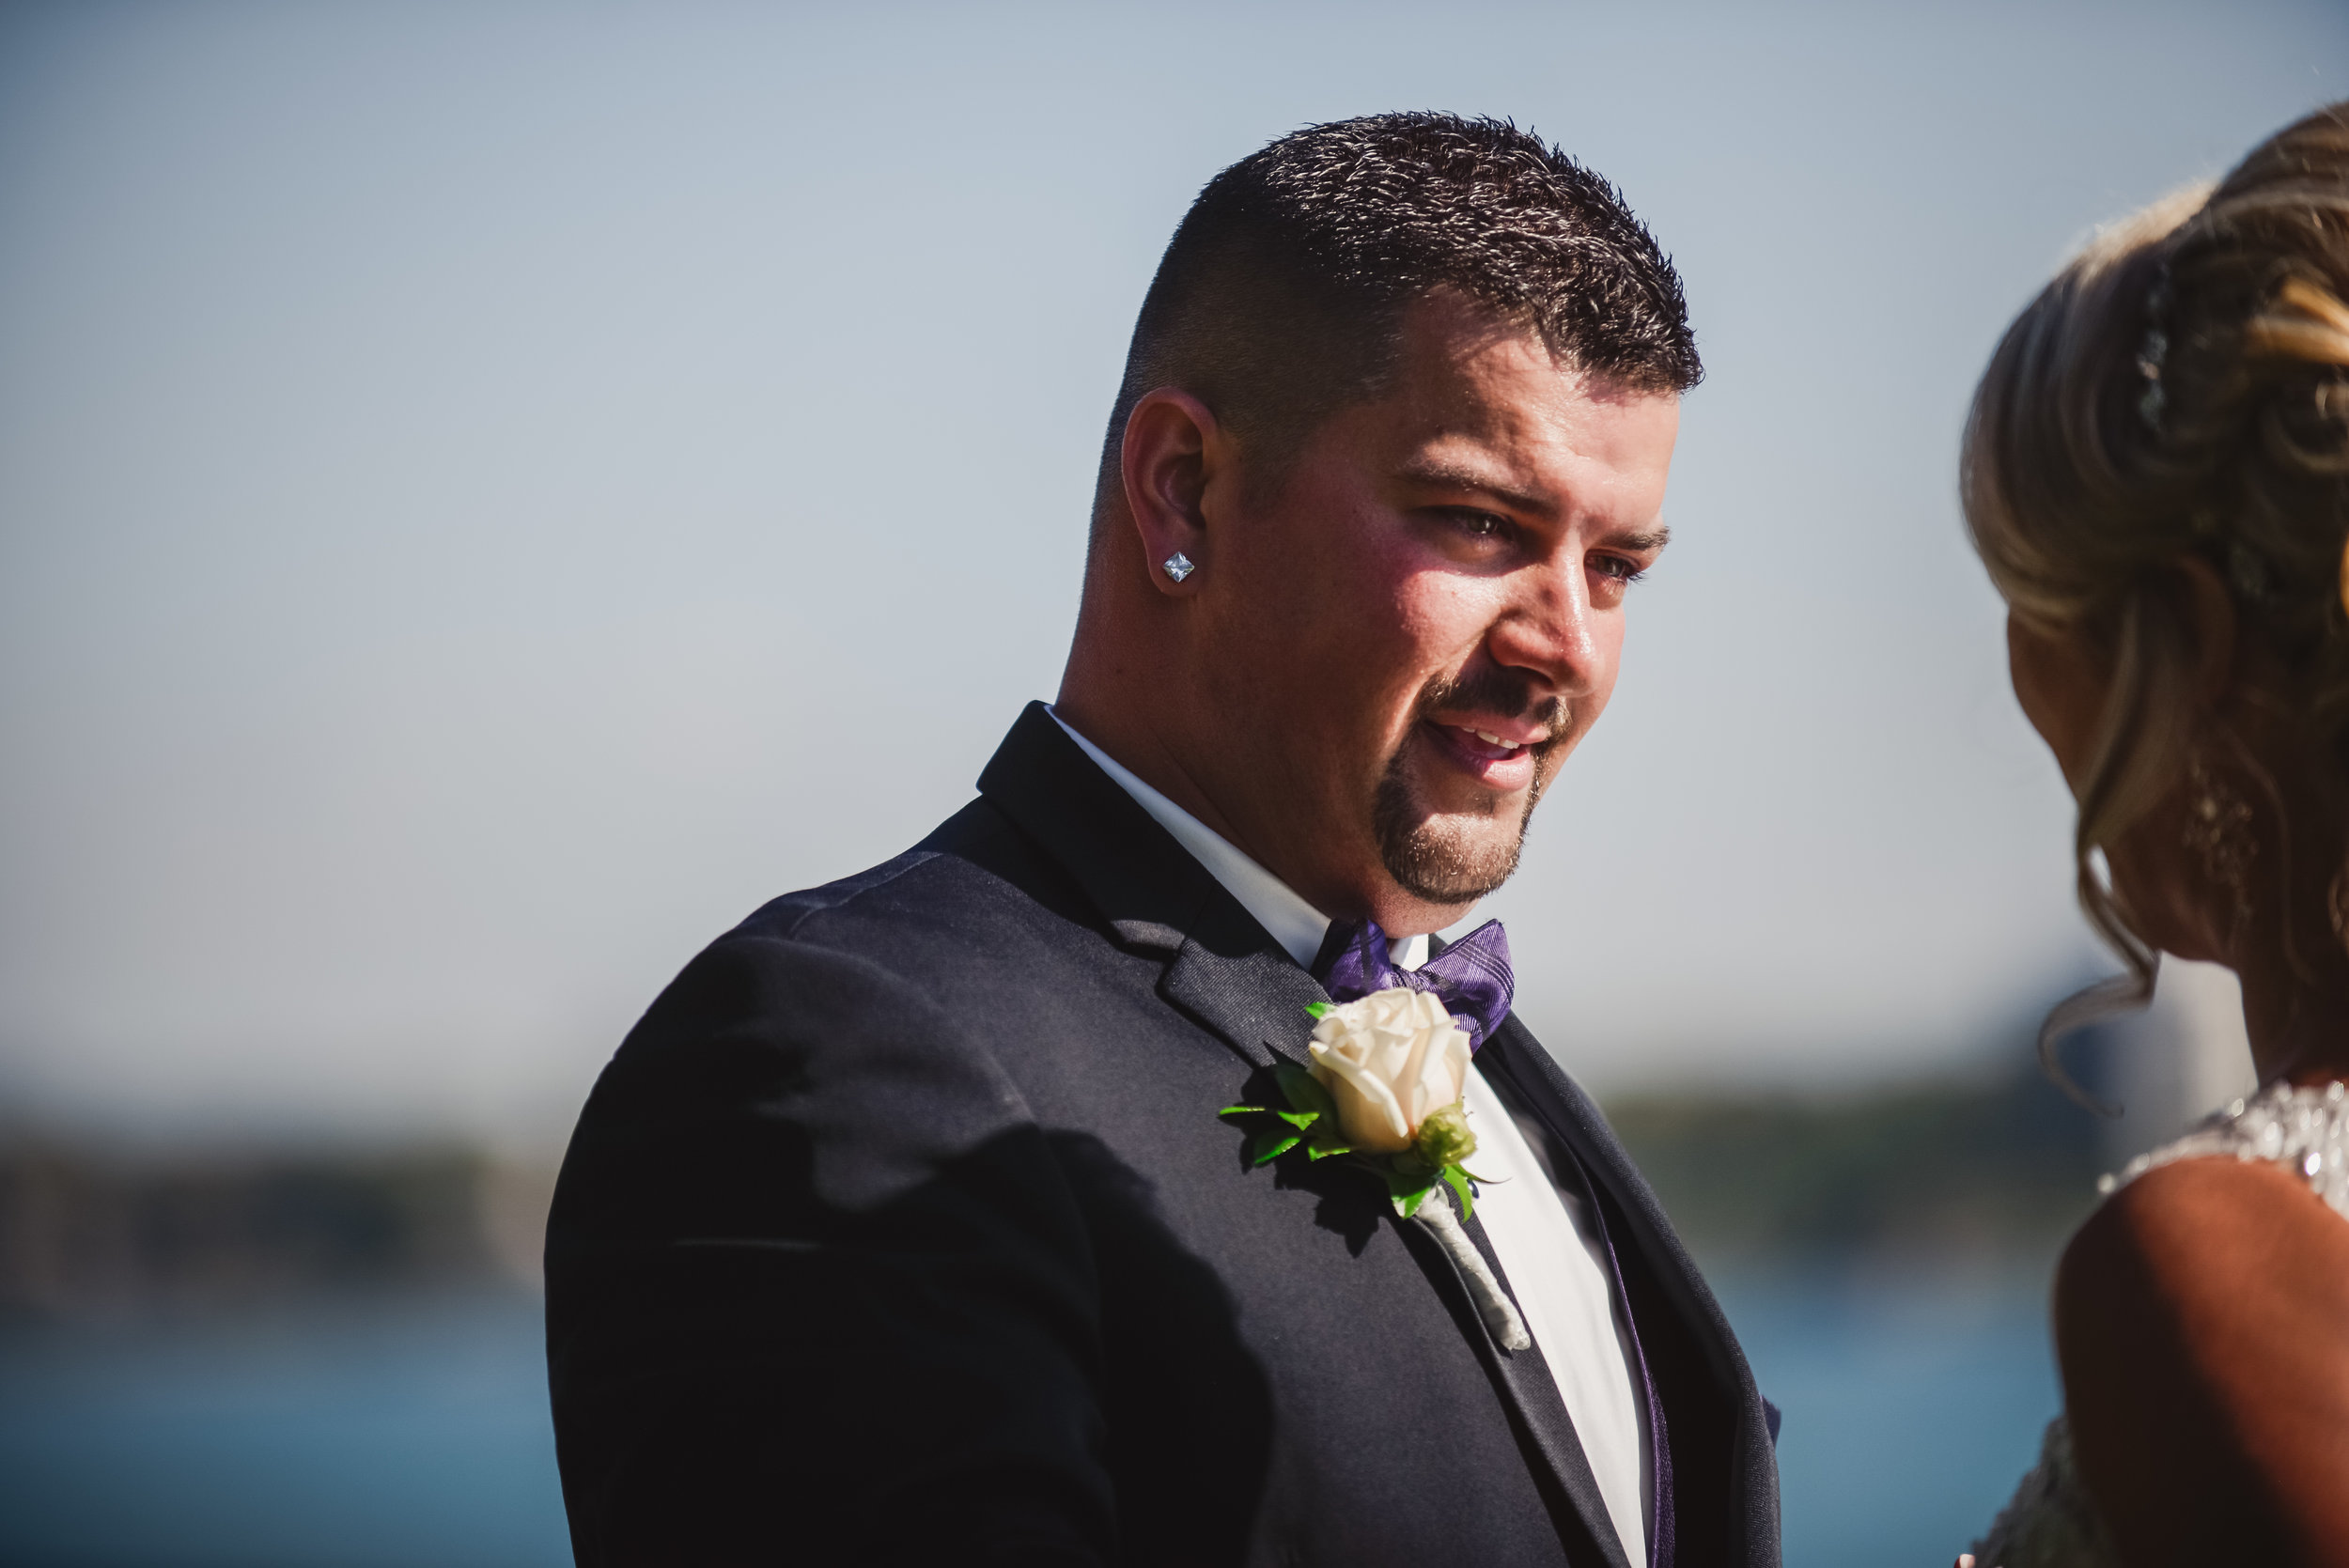 Detroit Wedding Photography, Michigan Wedding Photographers